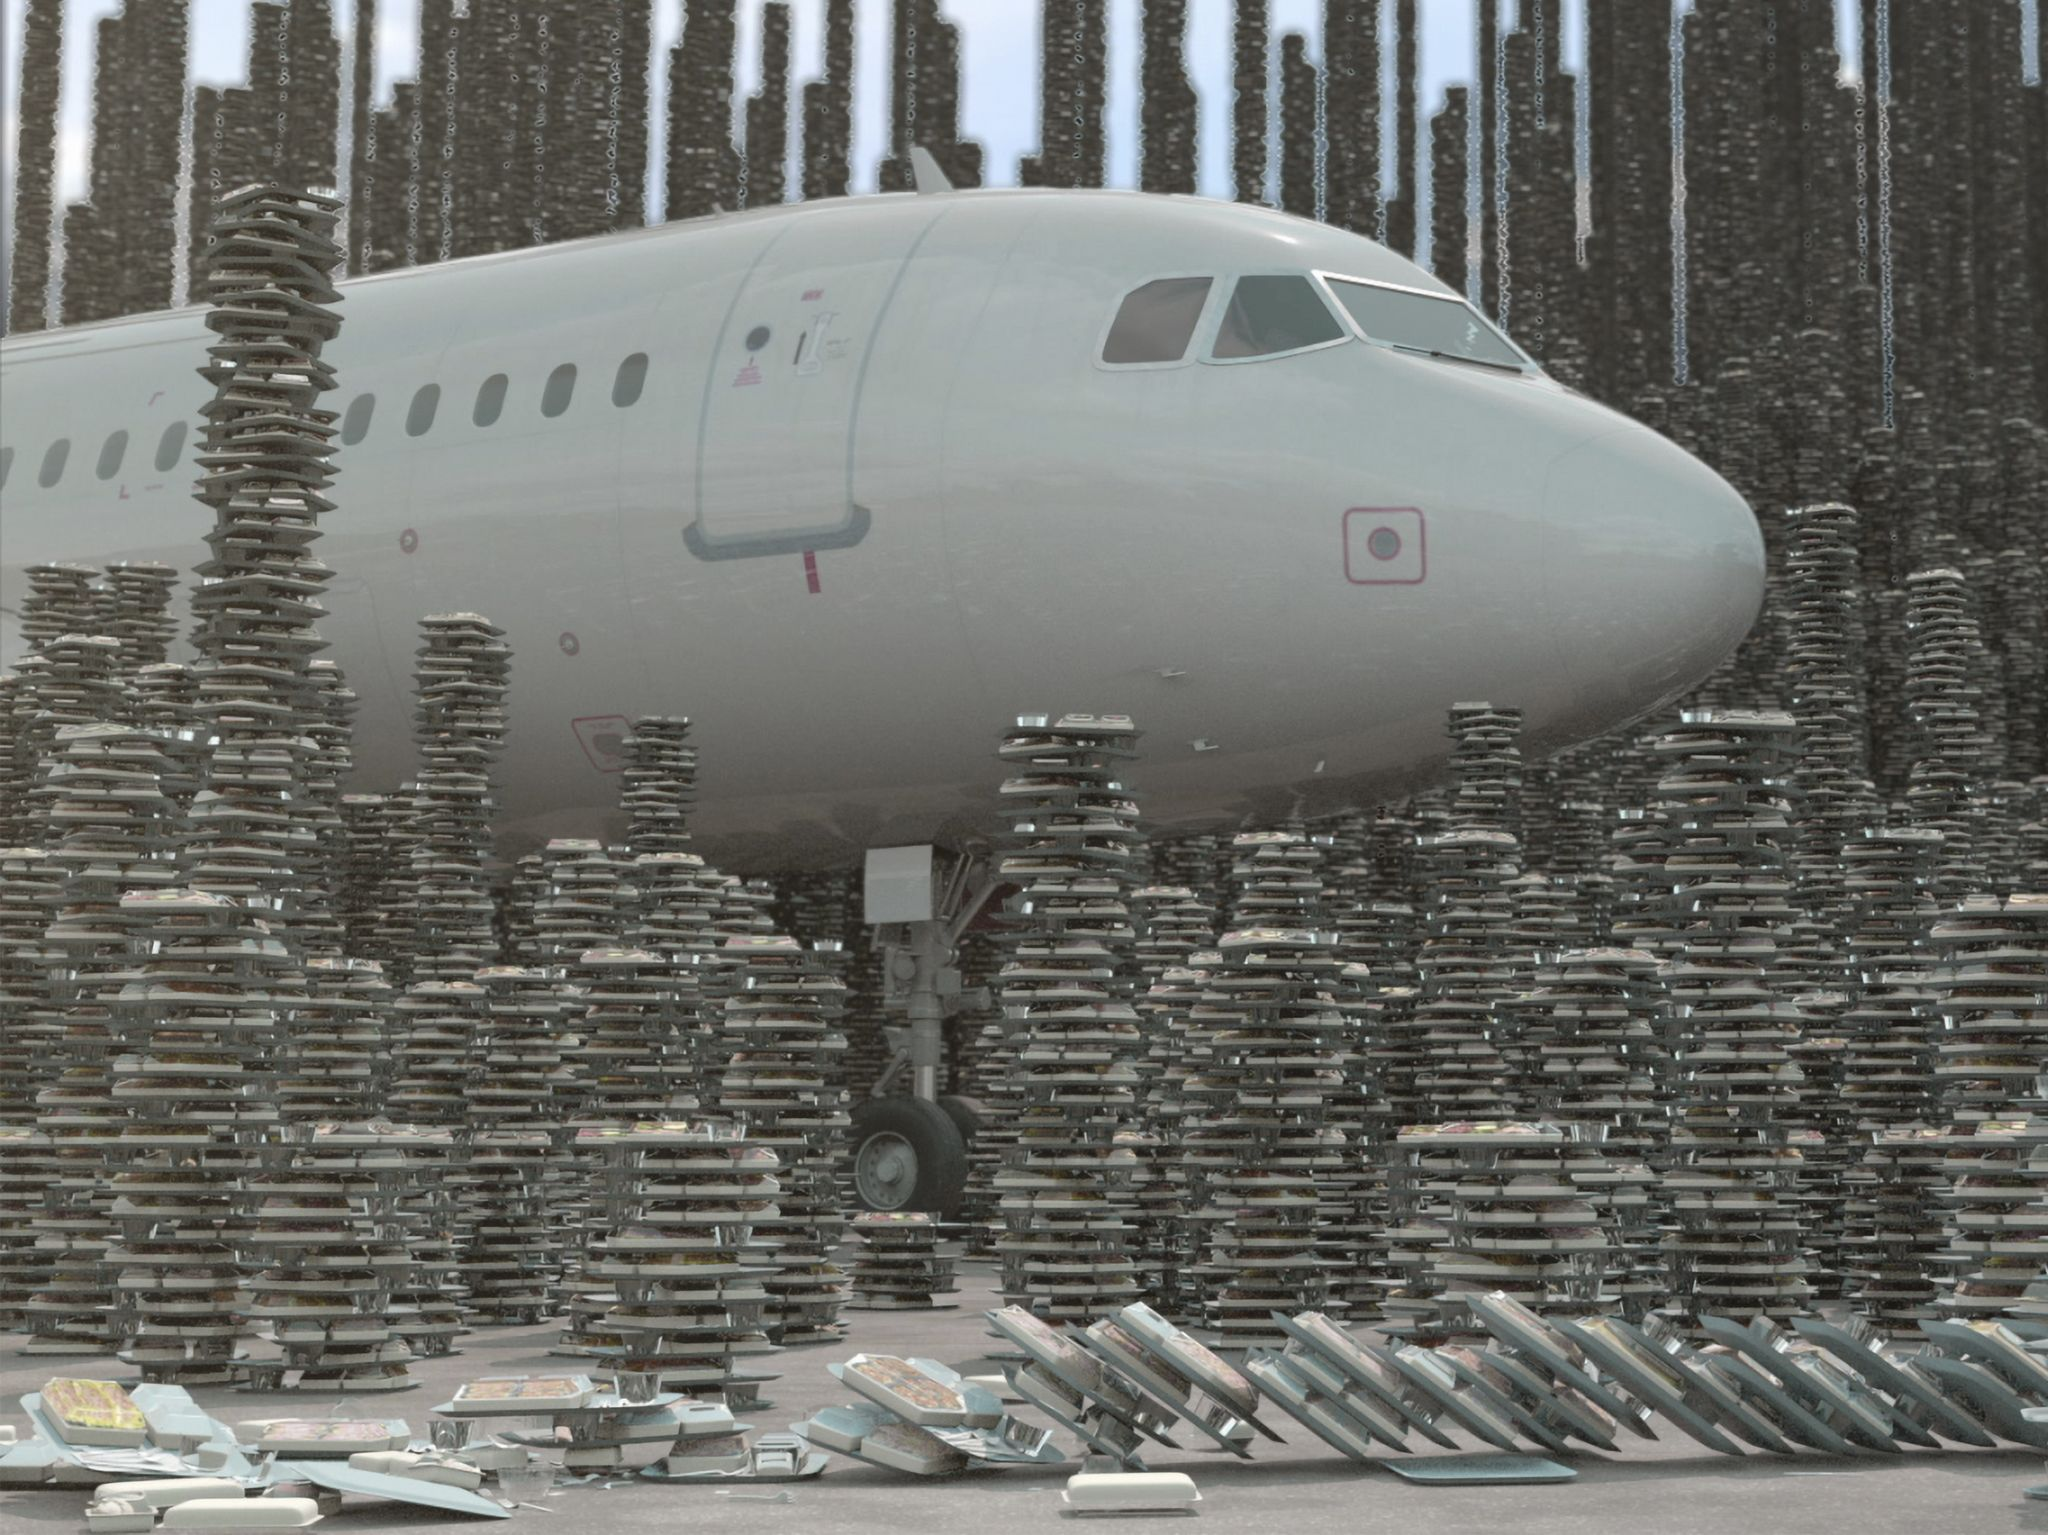 CGI of front of plane on runway with stacks of airplane meals surrounding it. This image is from... [Photo of the day - August 2020]